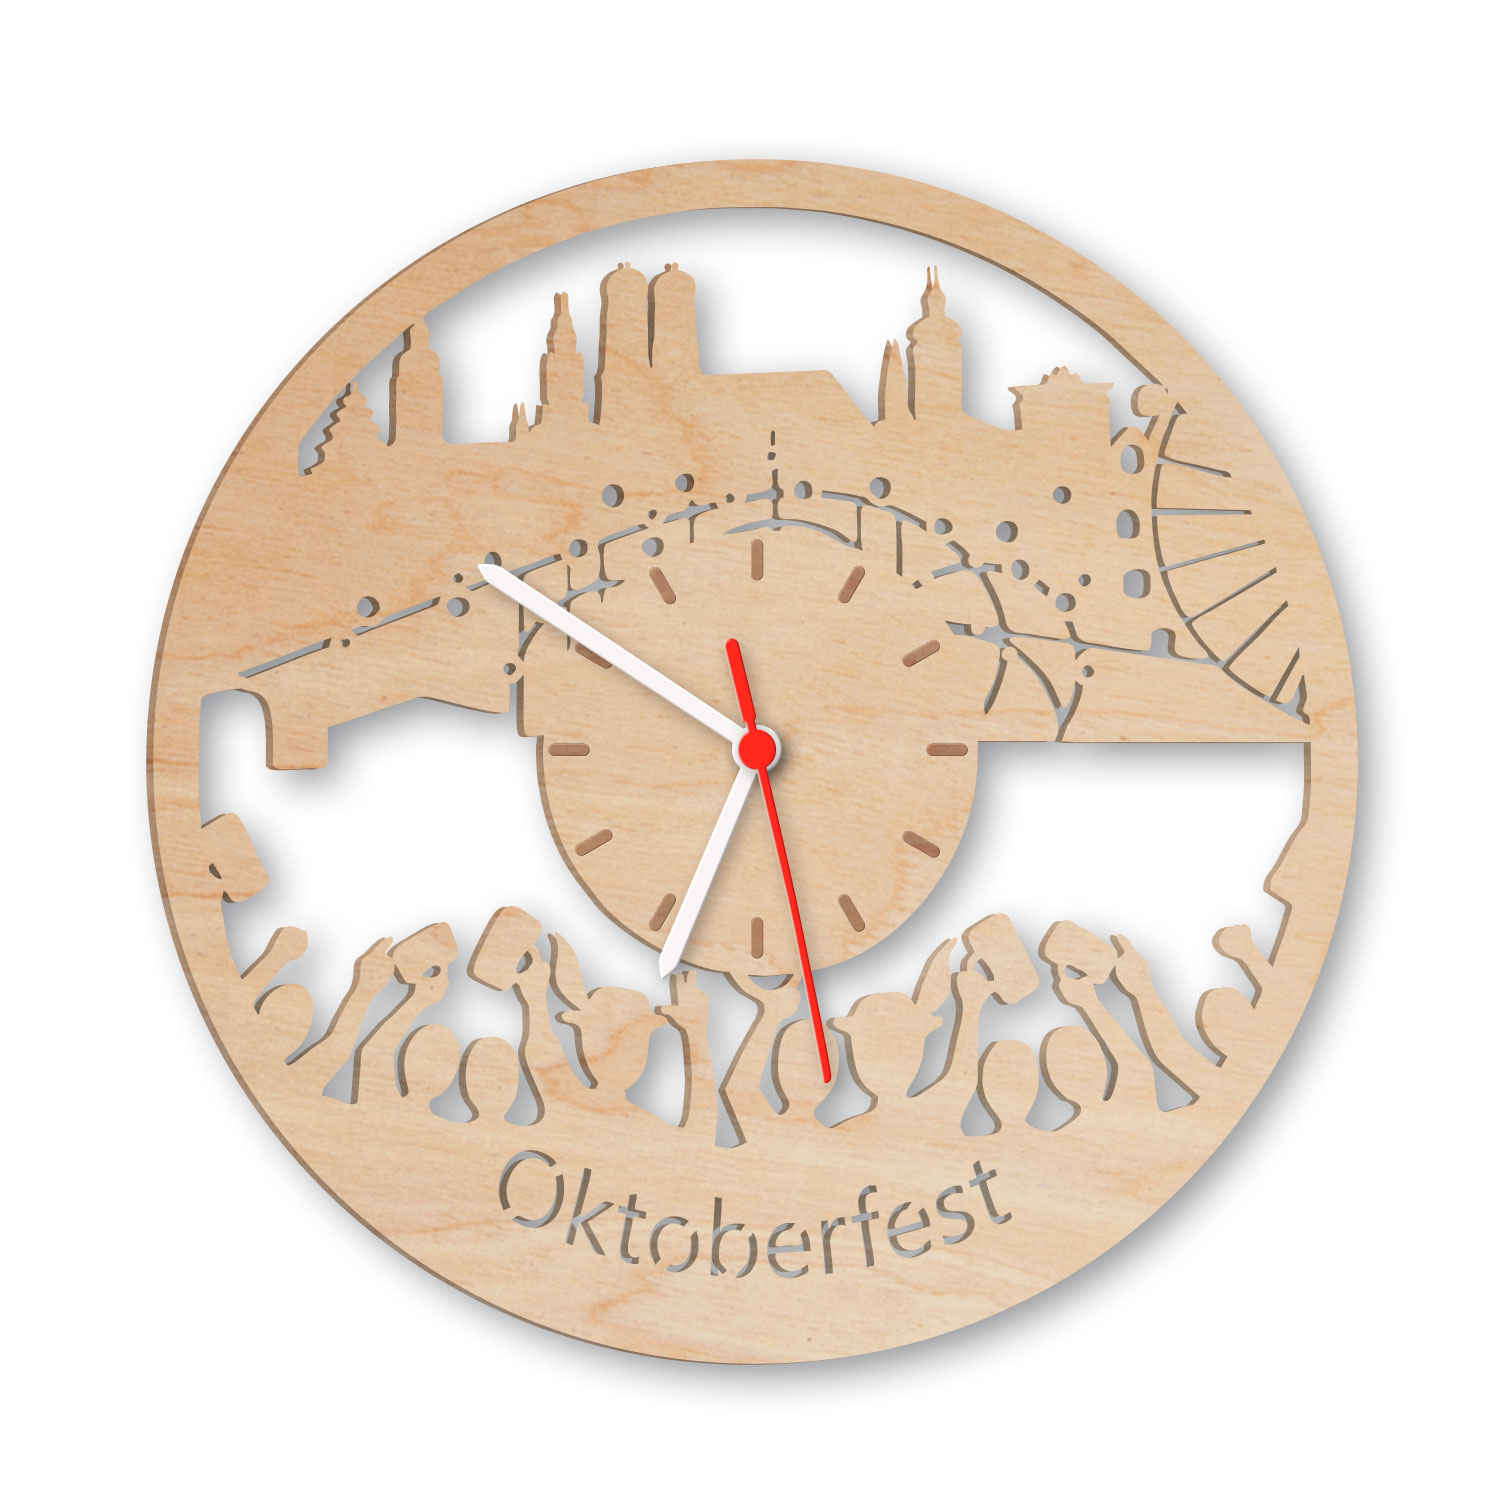 wanduhr aus holz oktoberfest 2017 einfach pers nlich schenken. Black Bedroom Furniture Sets. Home Design Ideas